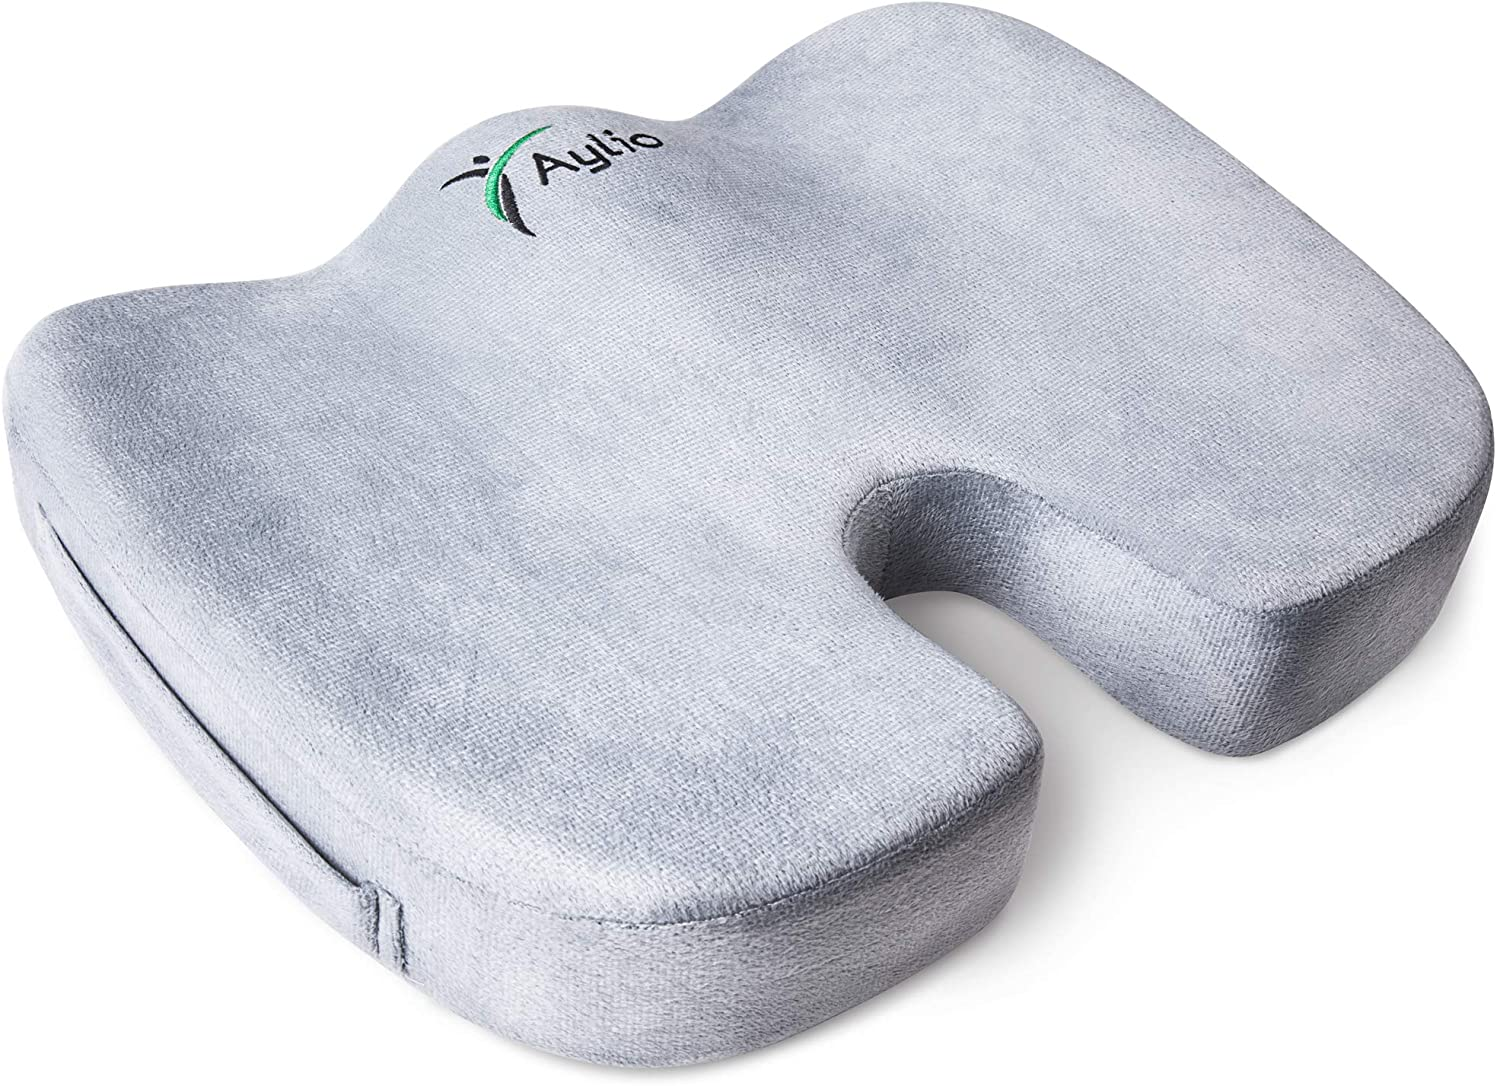 Amazon.com: Aylio Coccyx Orthopedic Comfort Foam Seat Cushion for Lower Back, Tailbone and Sciatica Pain Relief (Gray) : Office Products